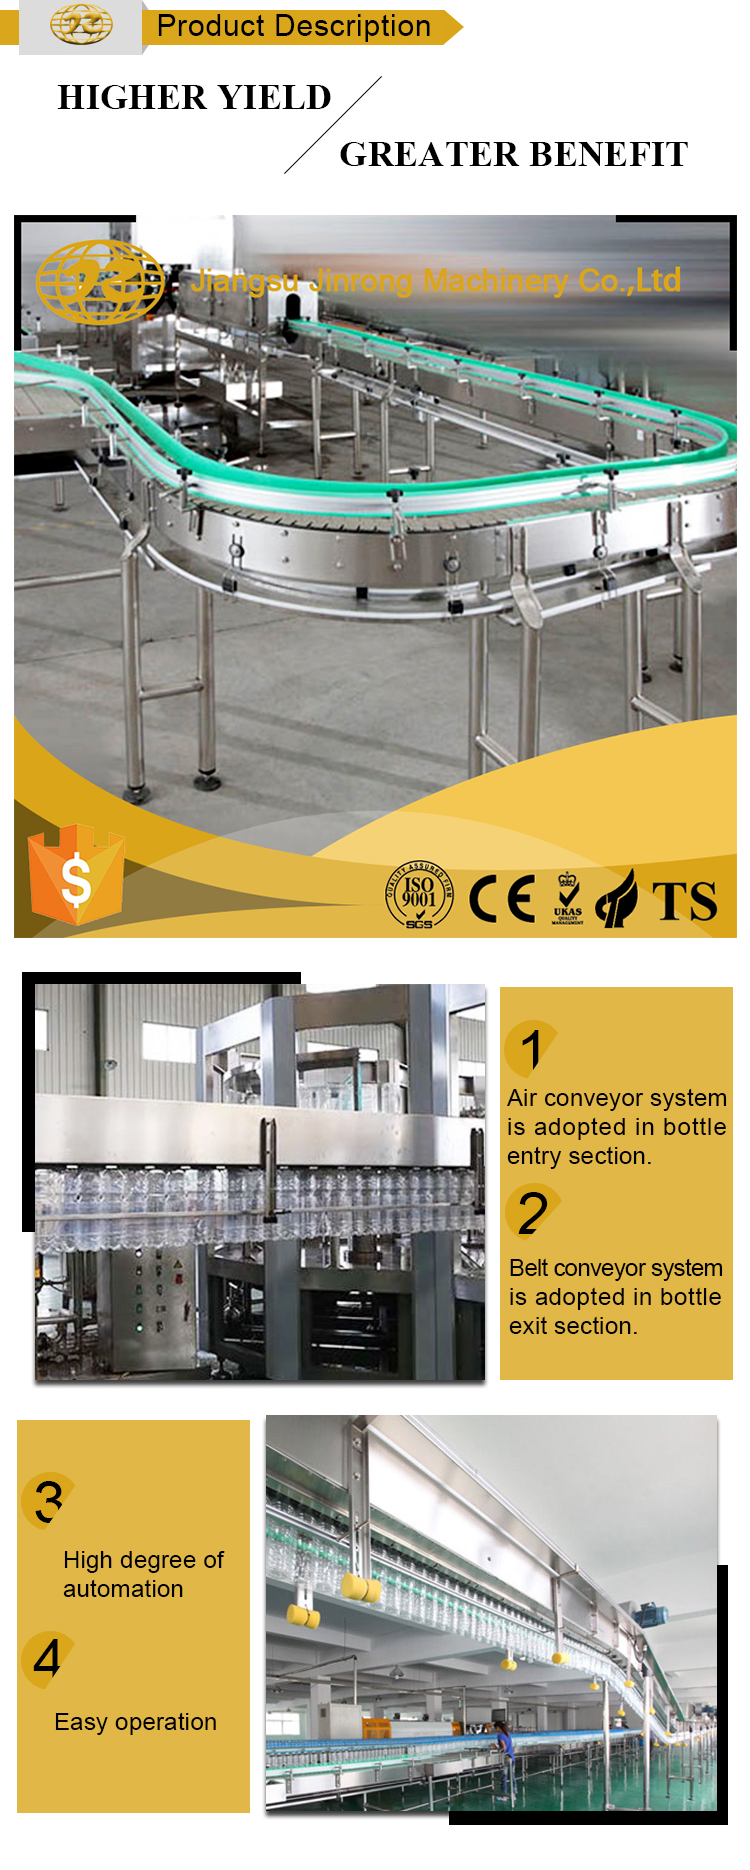 Horizontal slat bottle chain conveyor system